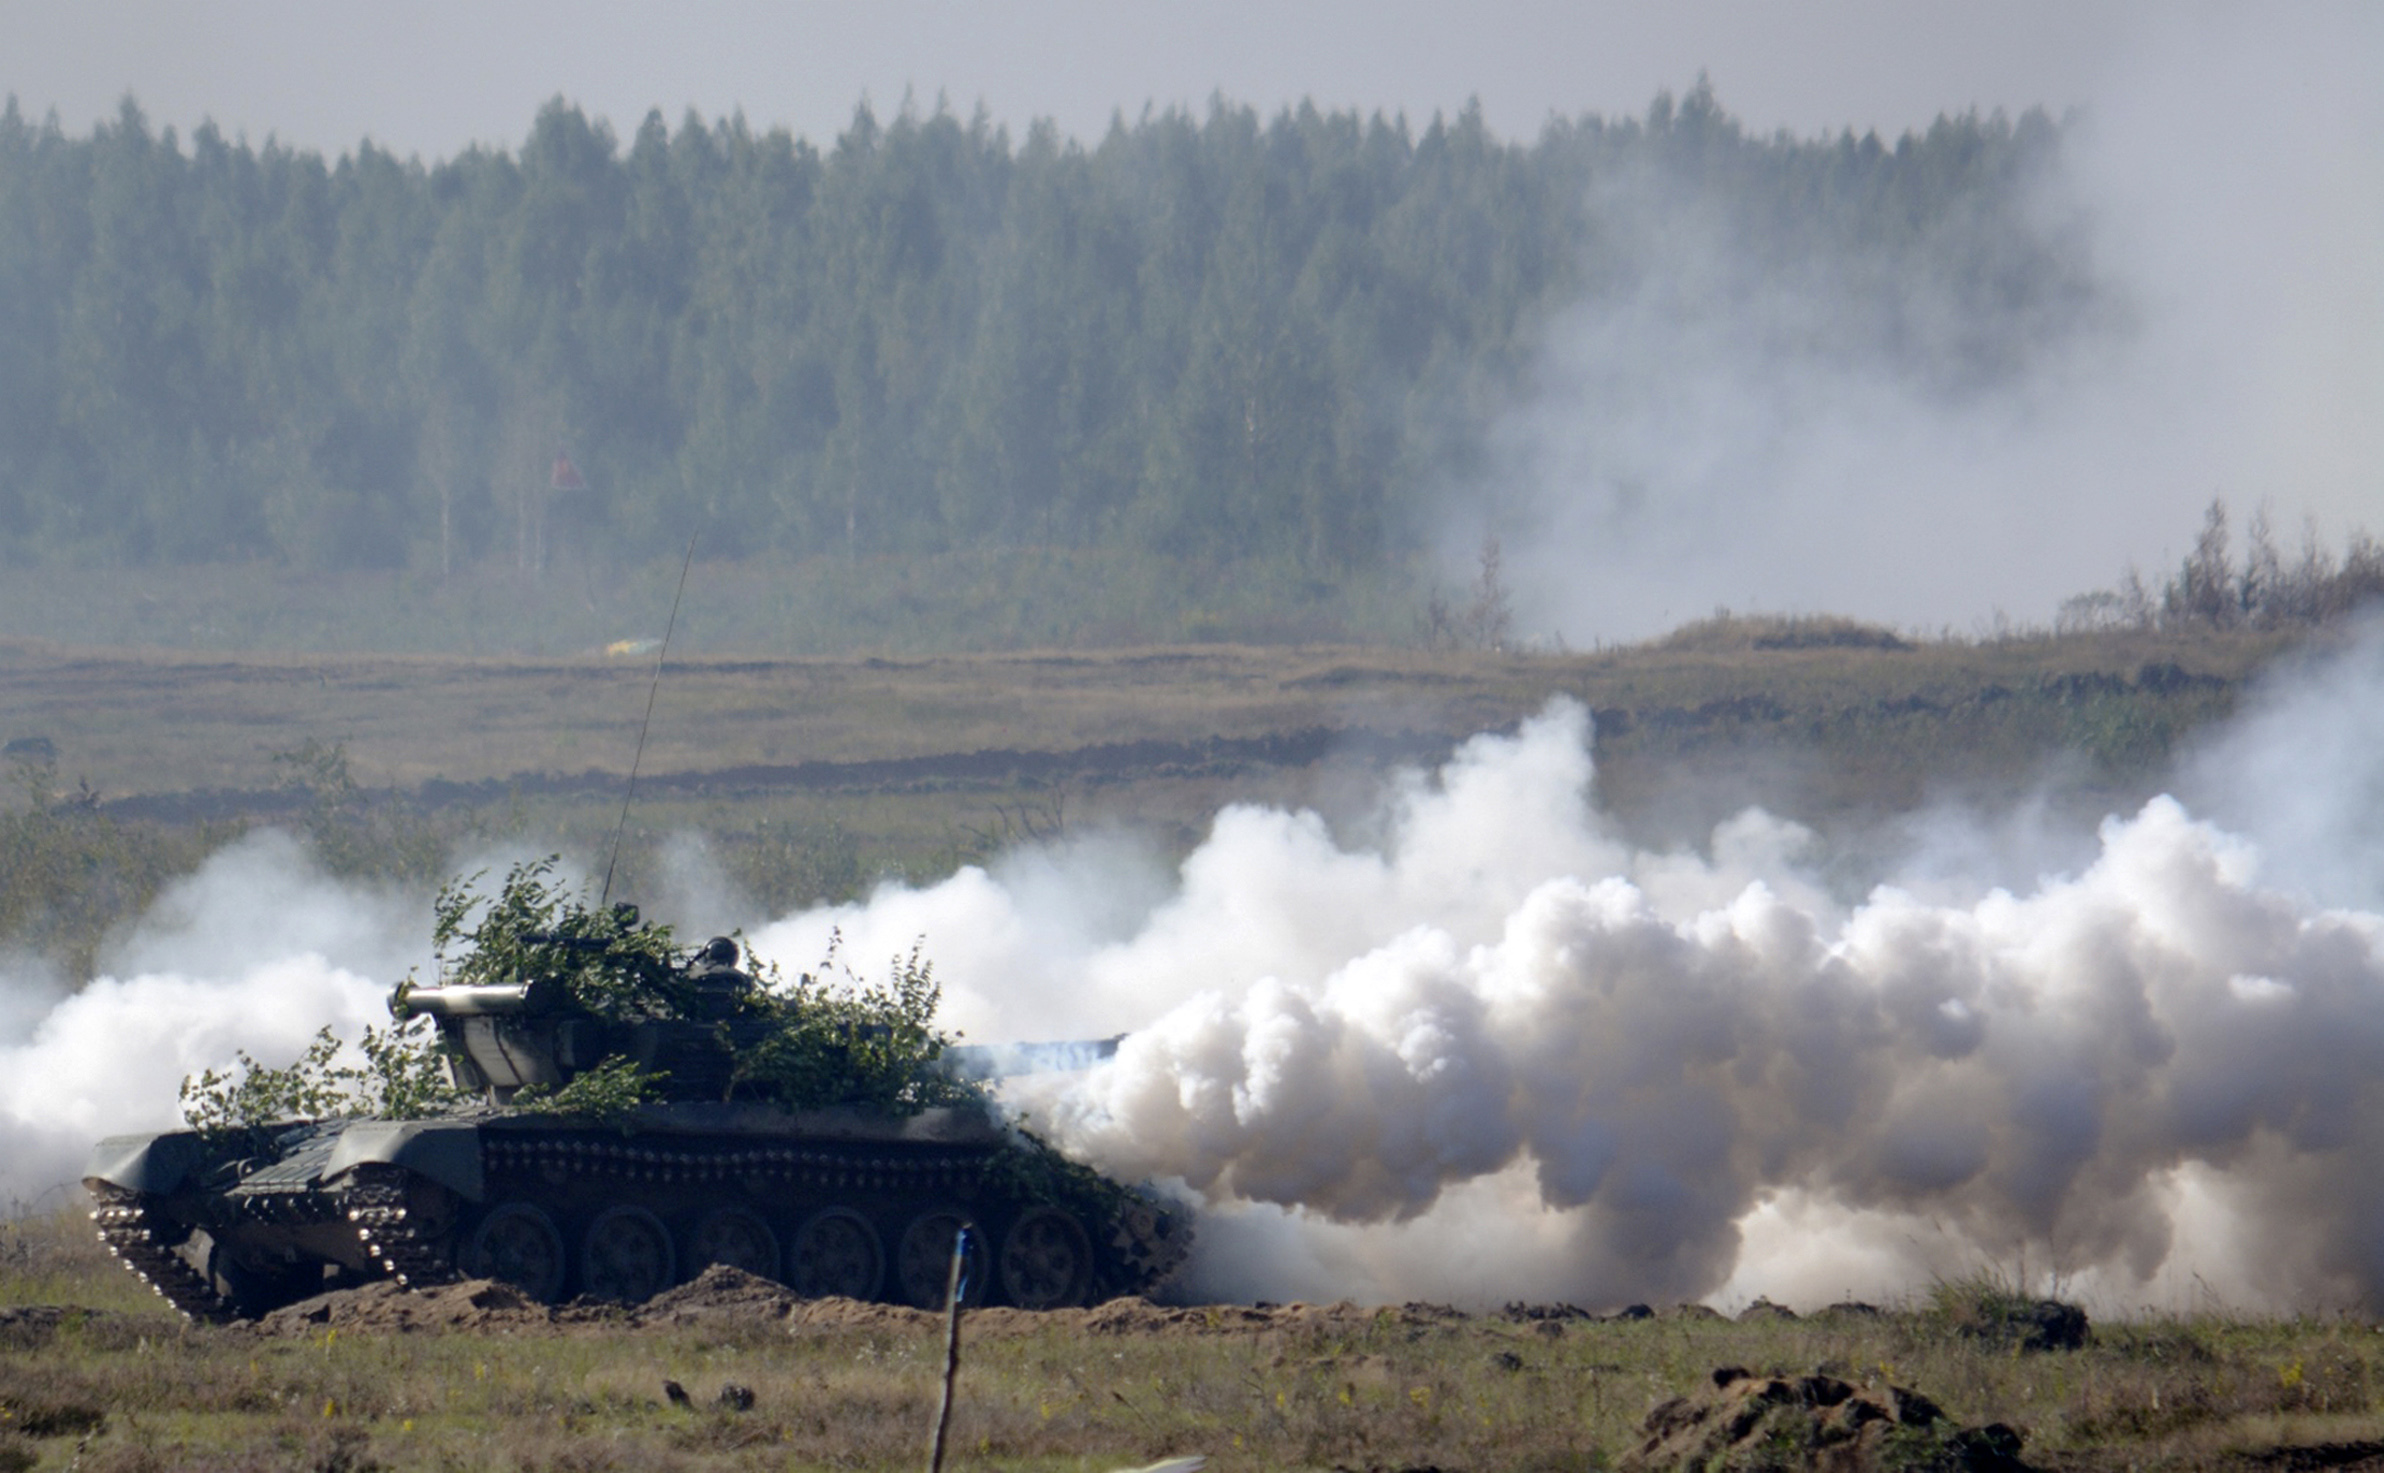 Russia and Belarus began major war games Sept. 14, 2017, an operation involving thousands of troops, tanks and aircraft on NATO's eastern edge practicing how to hunt down and destroy armed spies, among other maneuvers. (Vayar Military Agency via AP)